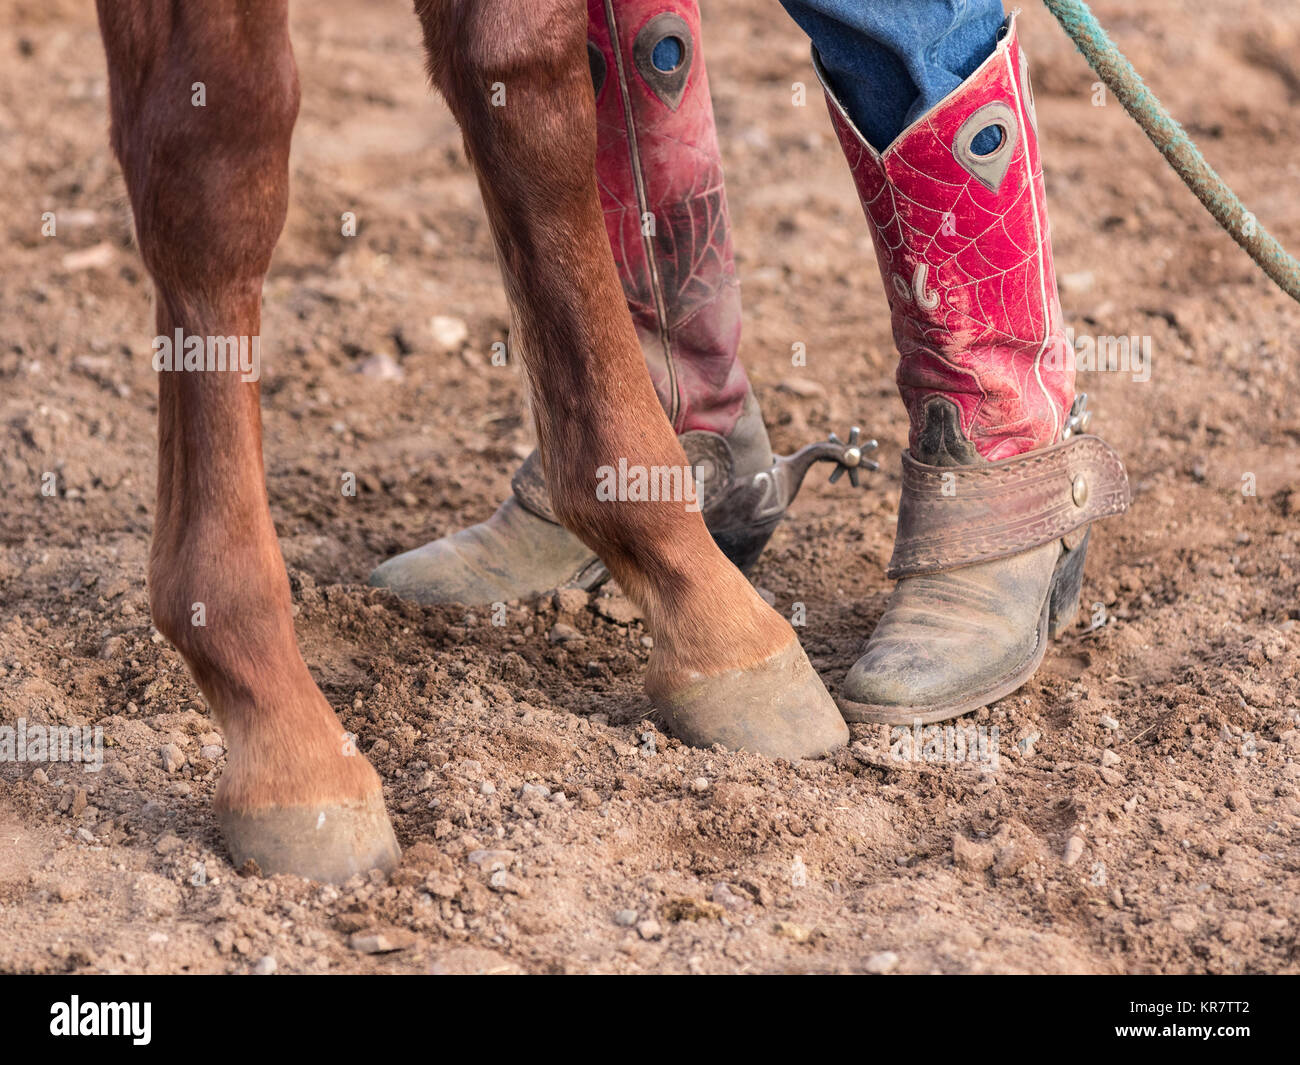 Closeup of Cowboy Boots and Horse Hooves - Stock Image